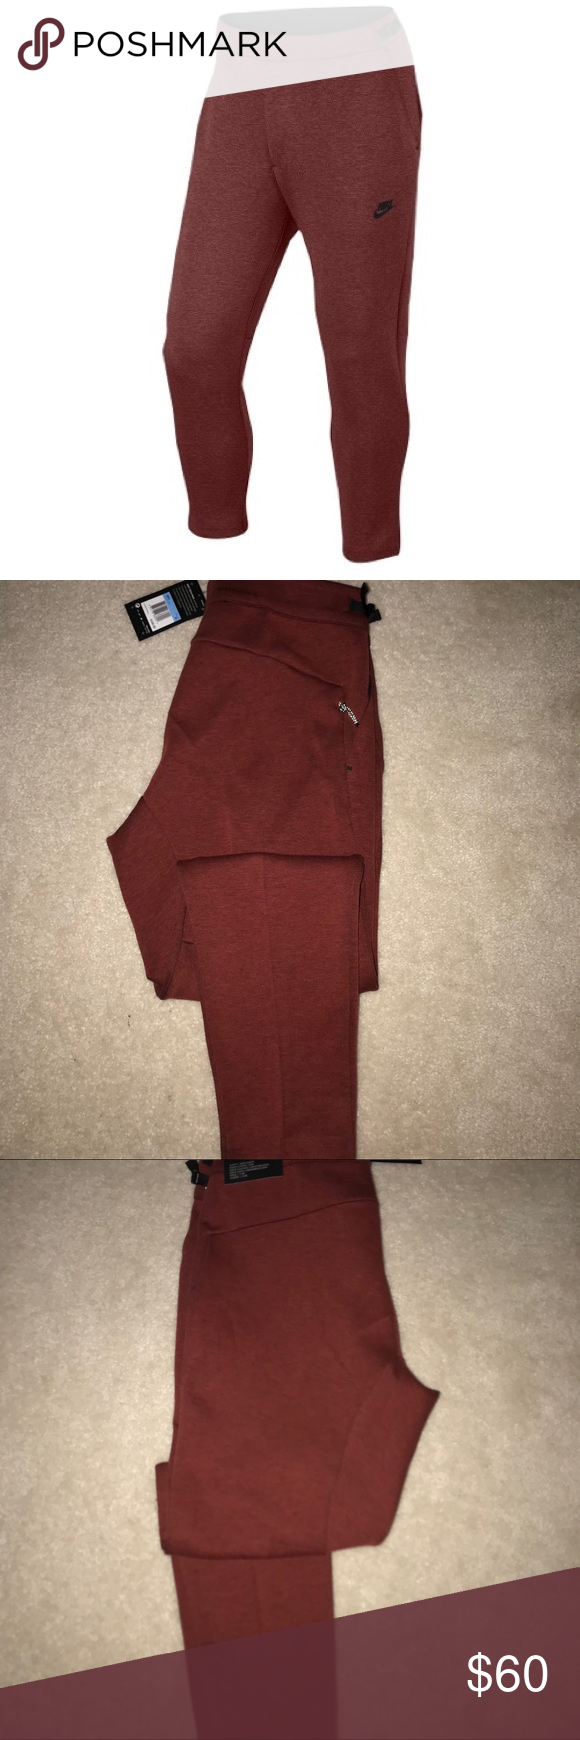 Nike tech fleece cropped joggers nwt nike tech fleece nike tech